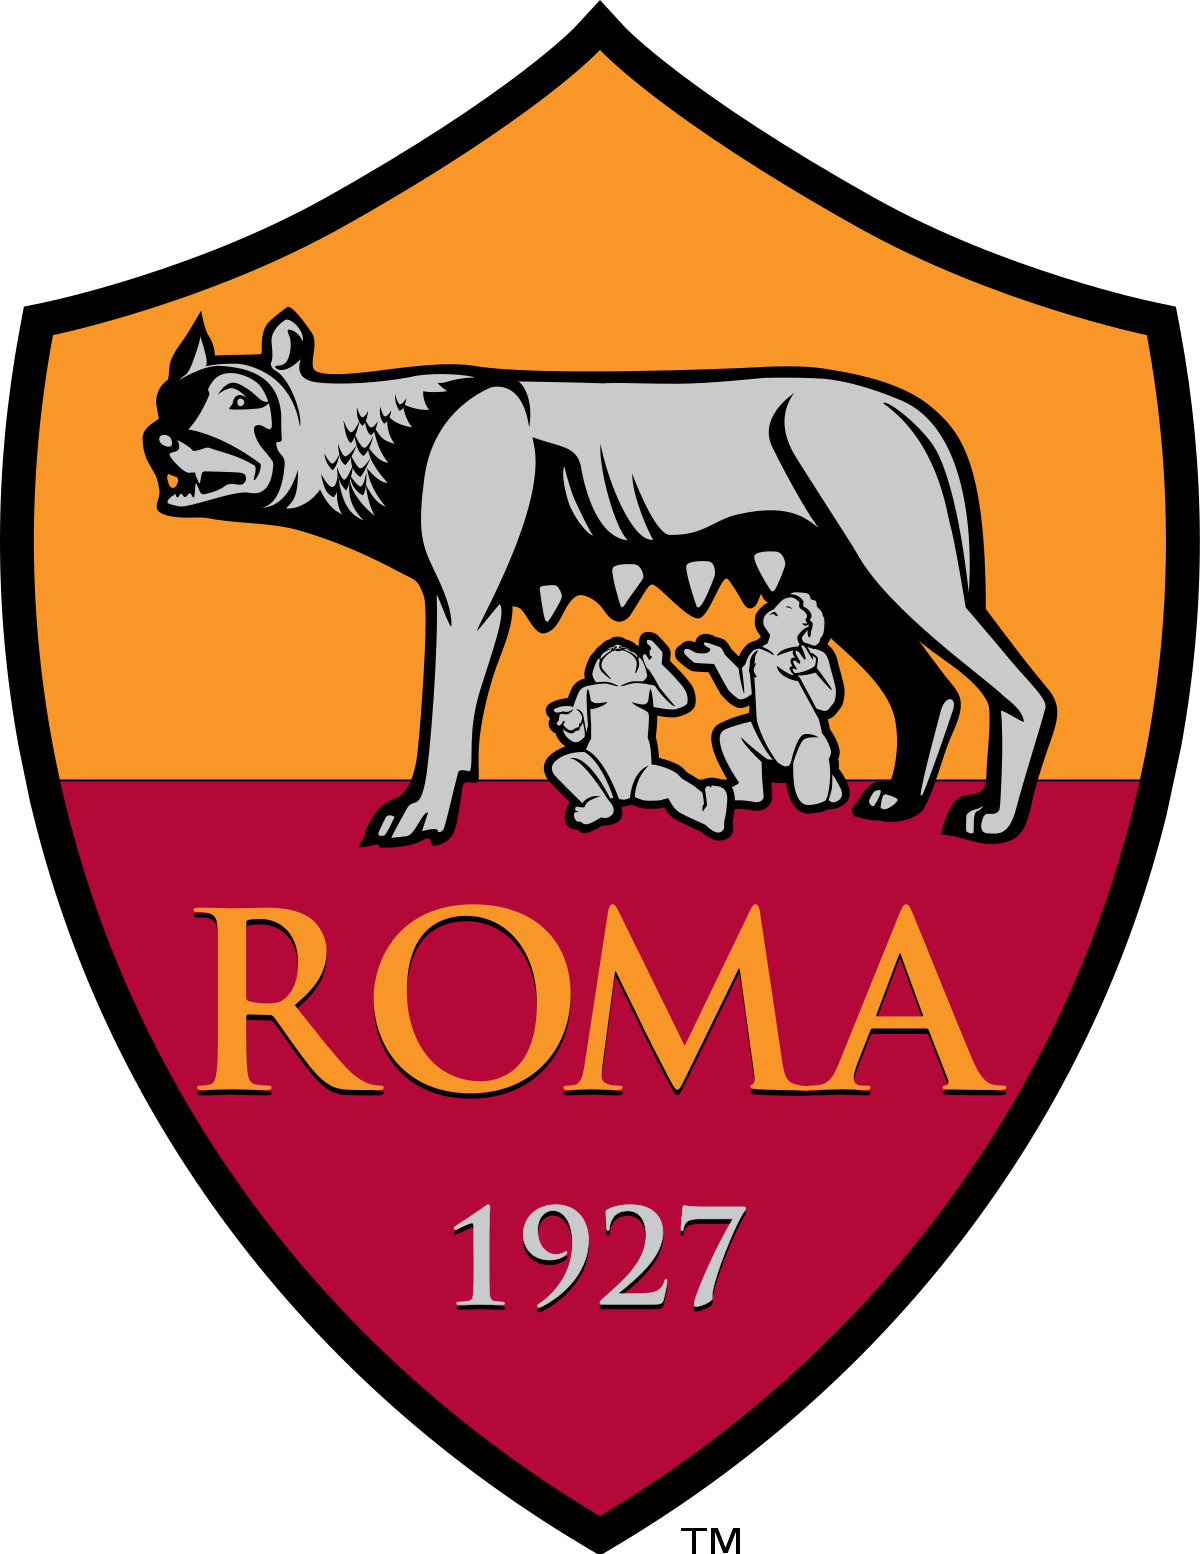 a s roma wikipedia as roma world football football logo world football